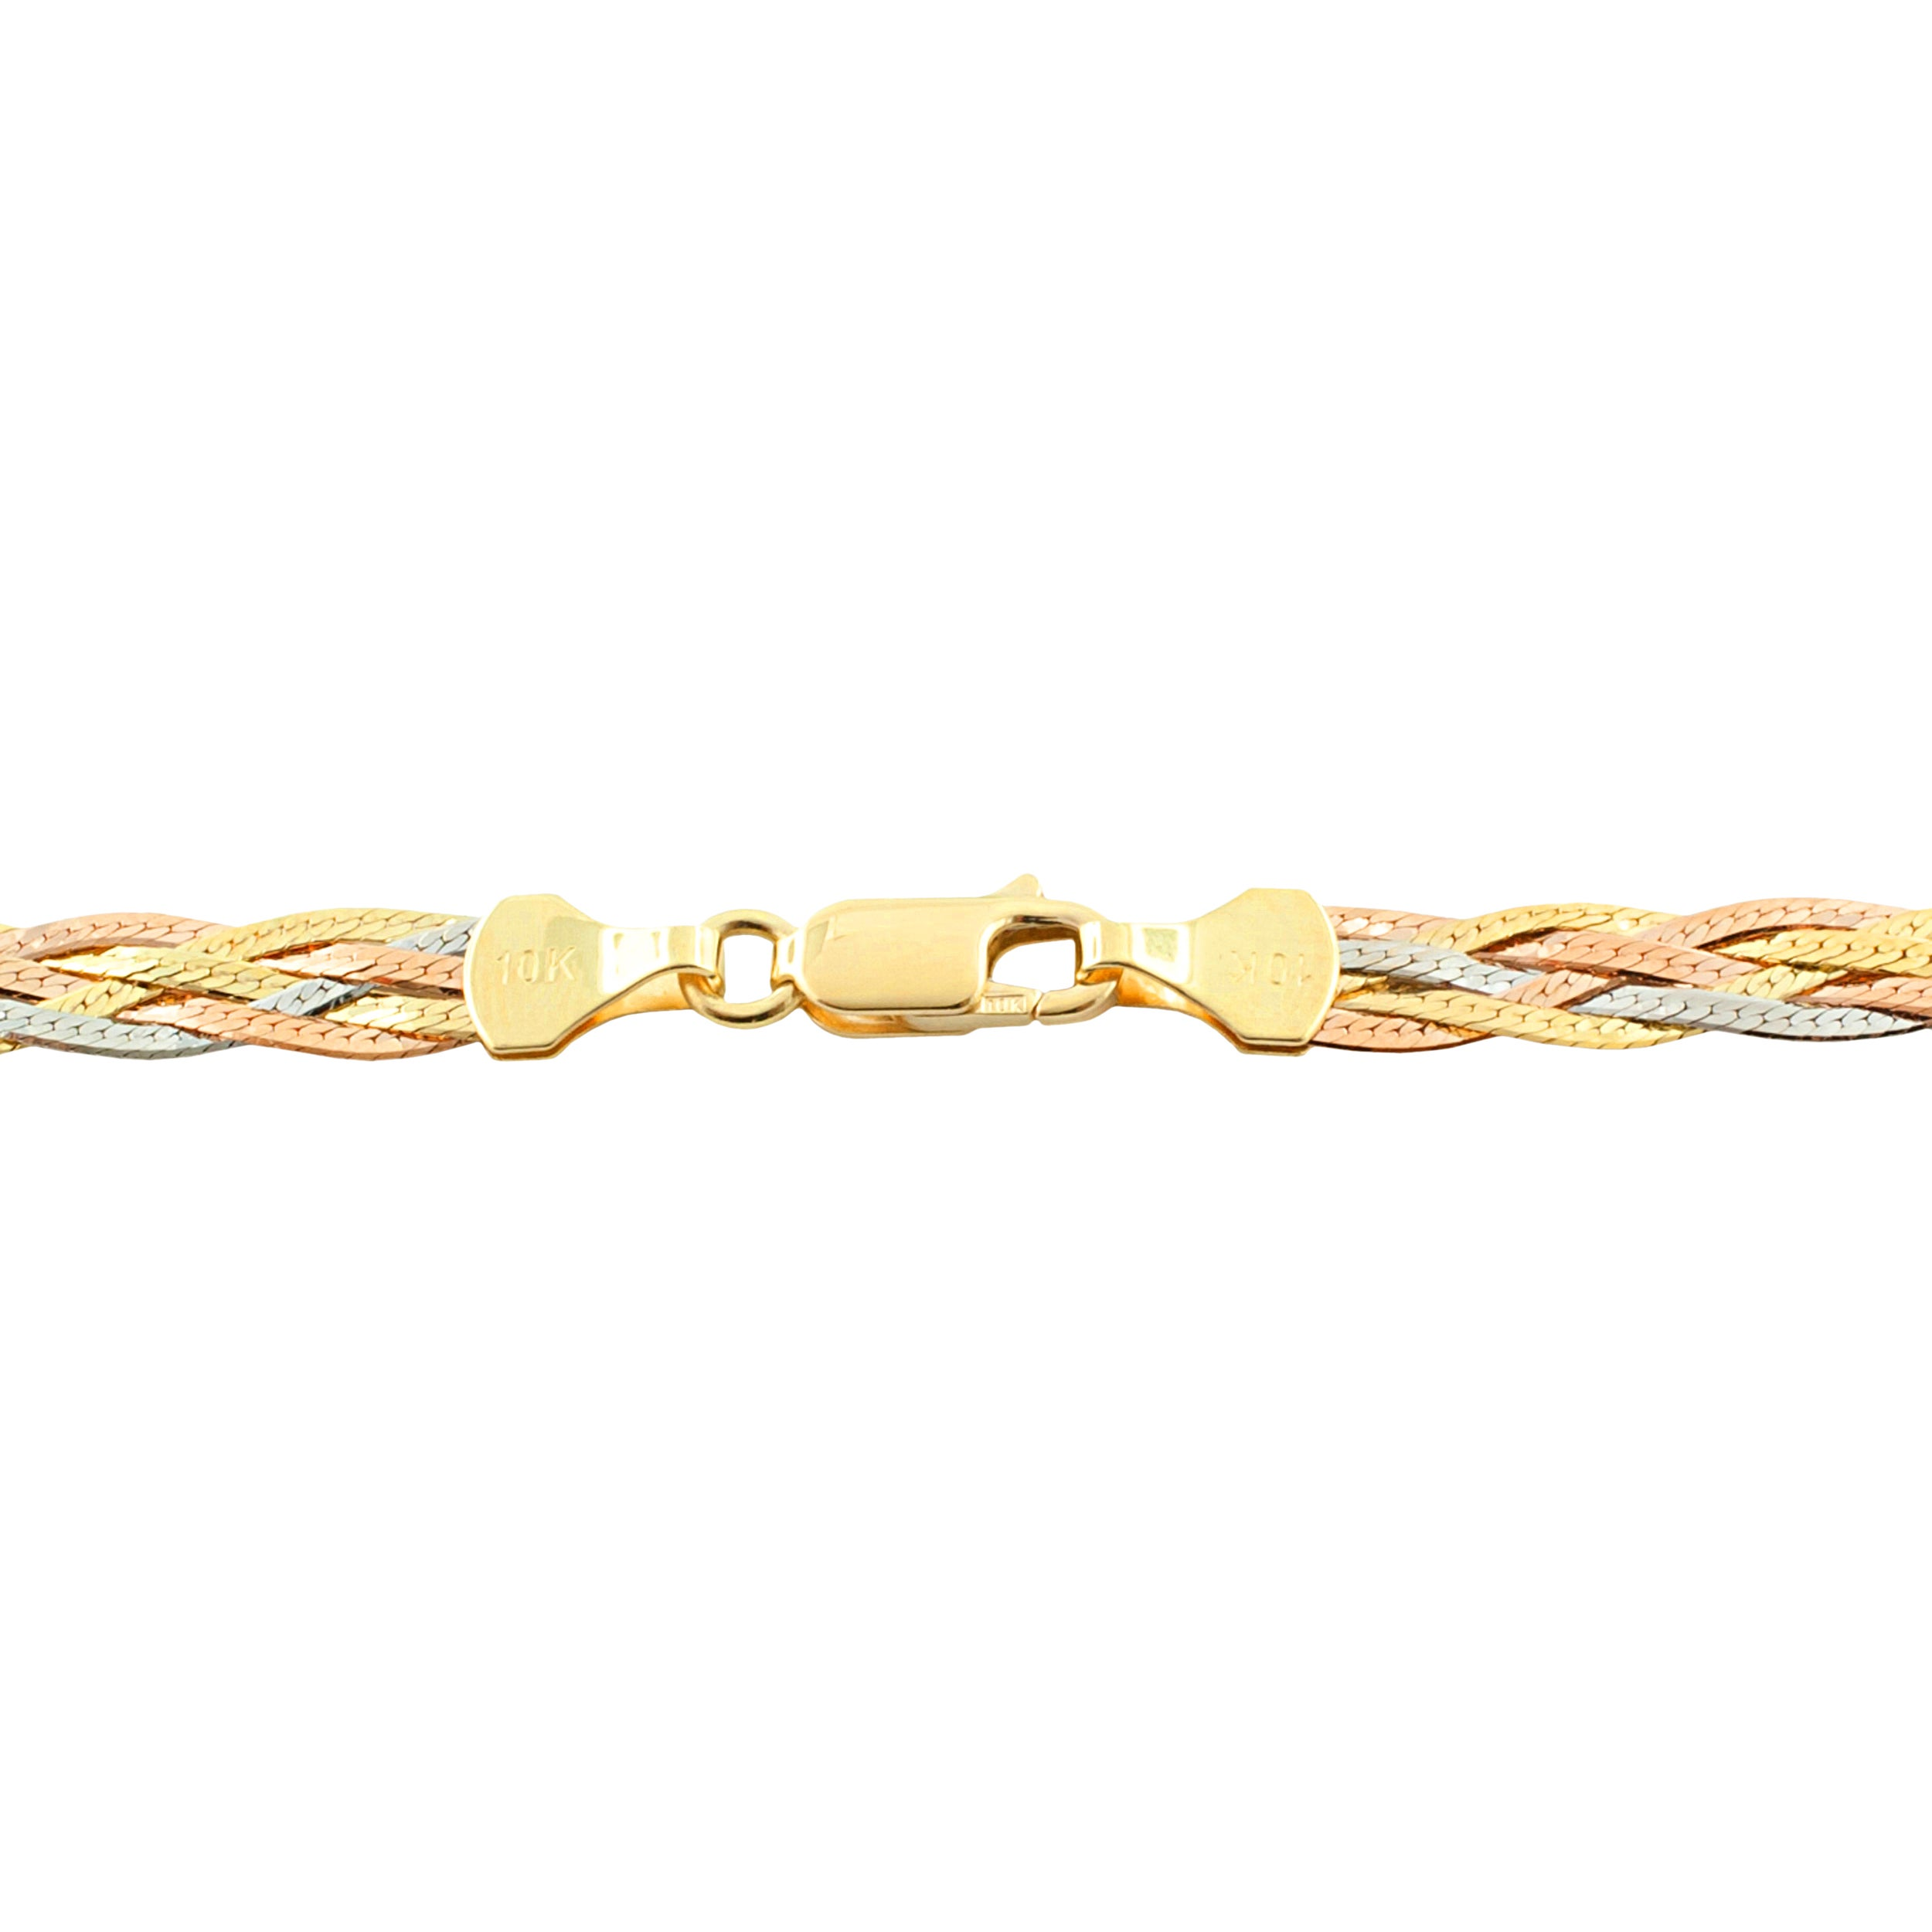 en bracelets products nugget bangle karat or bangles mens collections gold bracelet